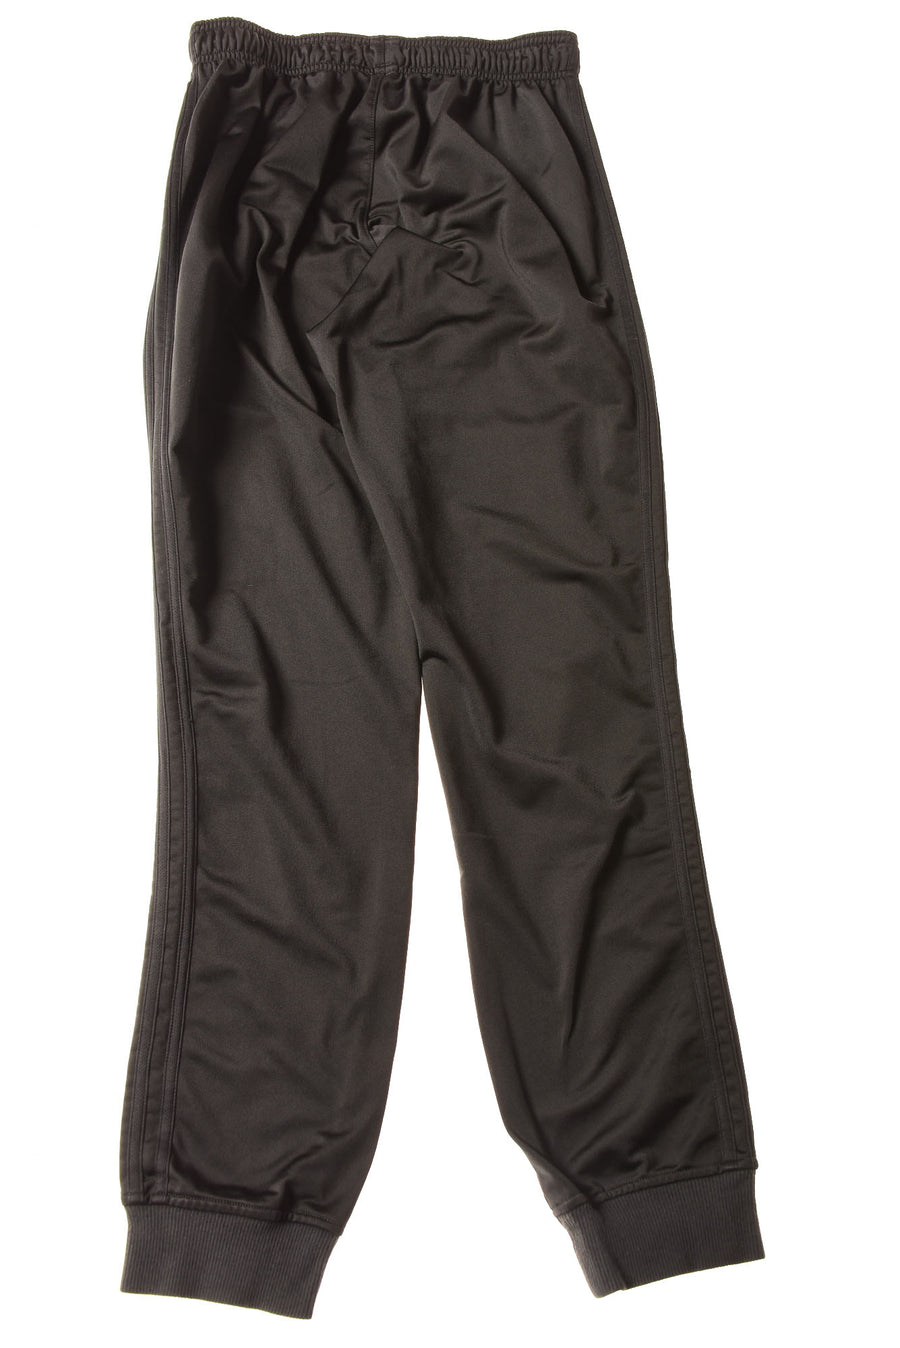 USED Adidas Women's Pants Medium Black